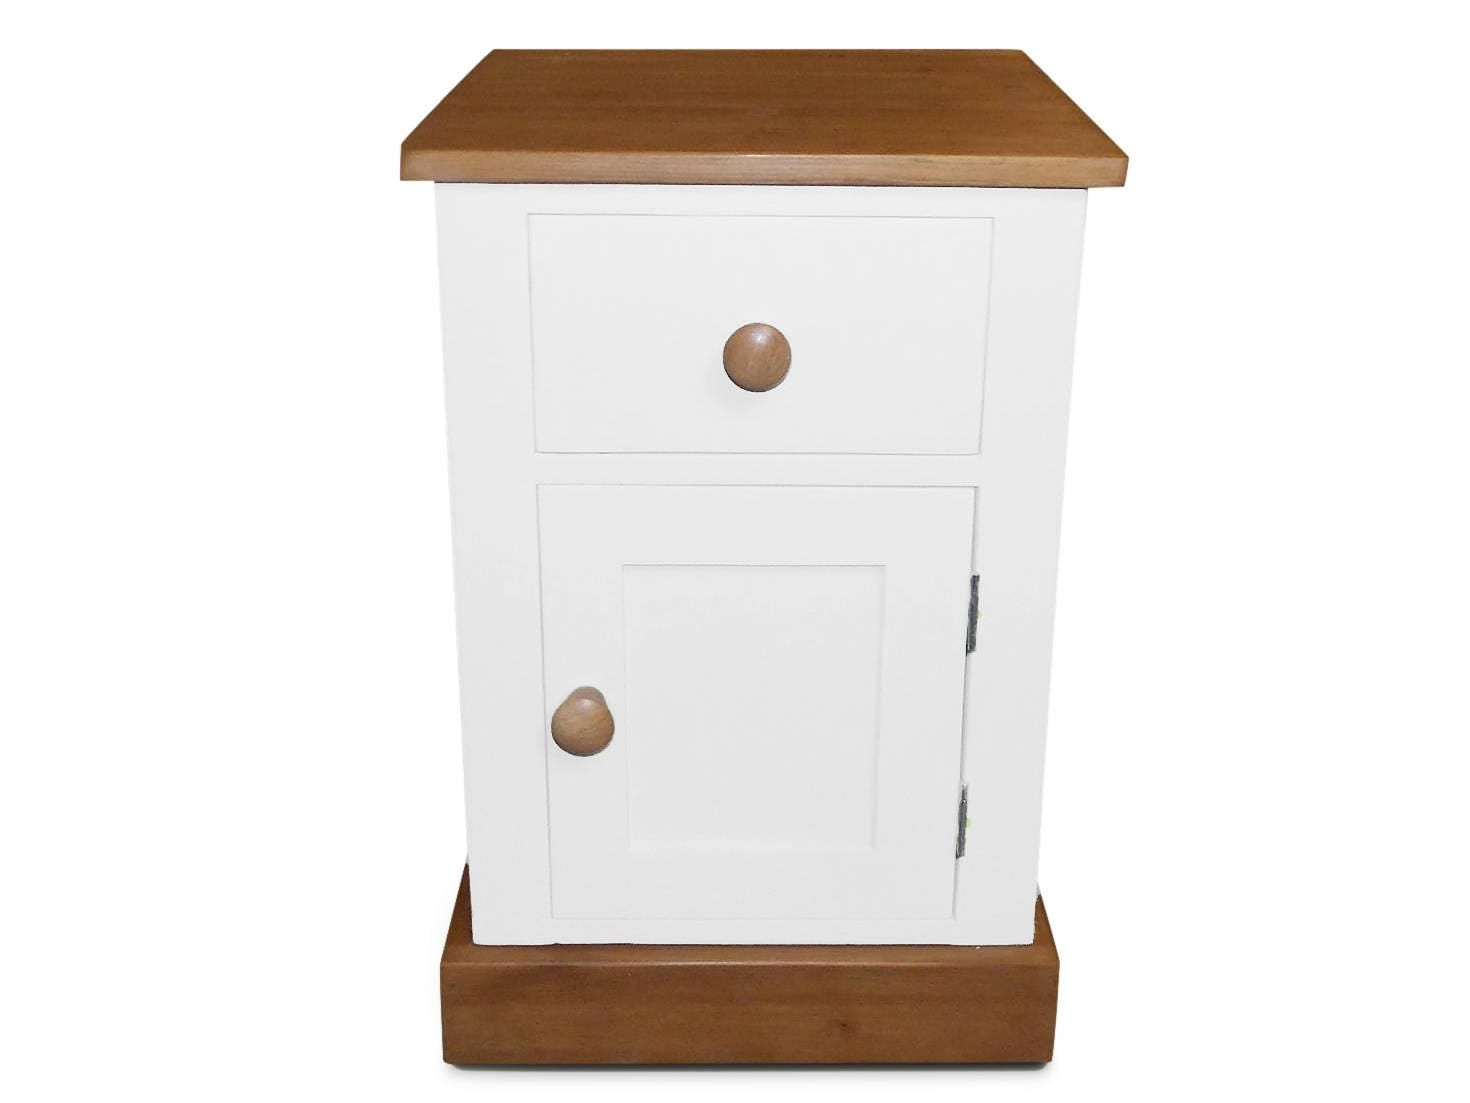 Handmade Farrow and Ball Solid Pine 1 Drawer Bedside Table Chest With Cupboard